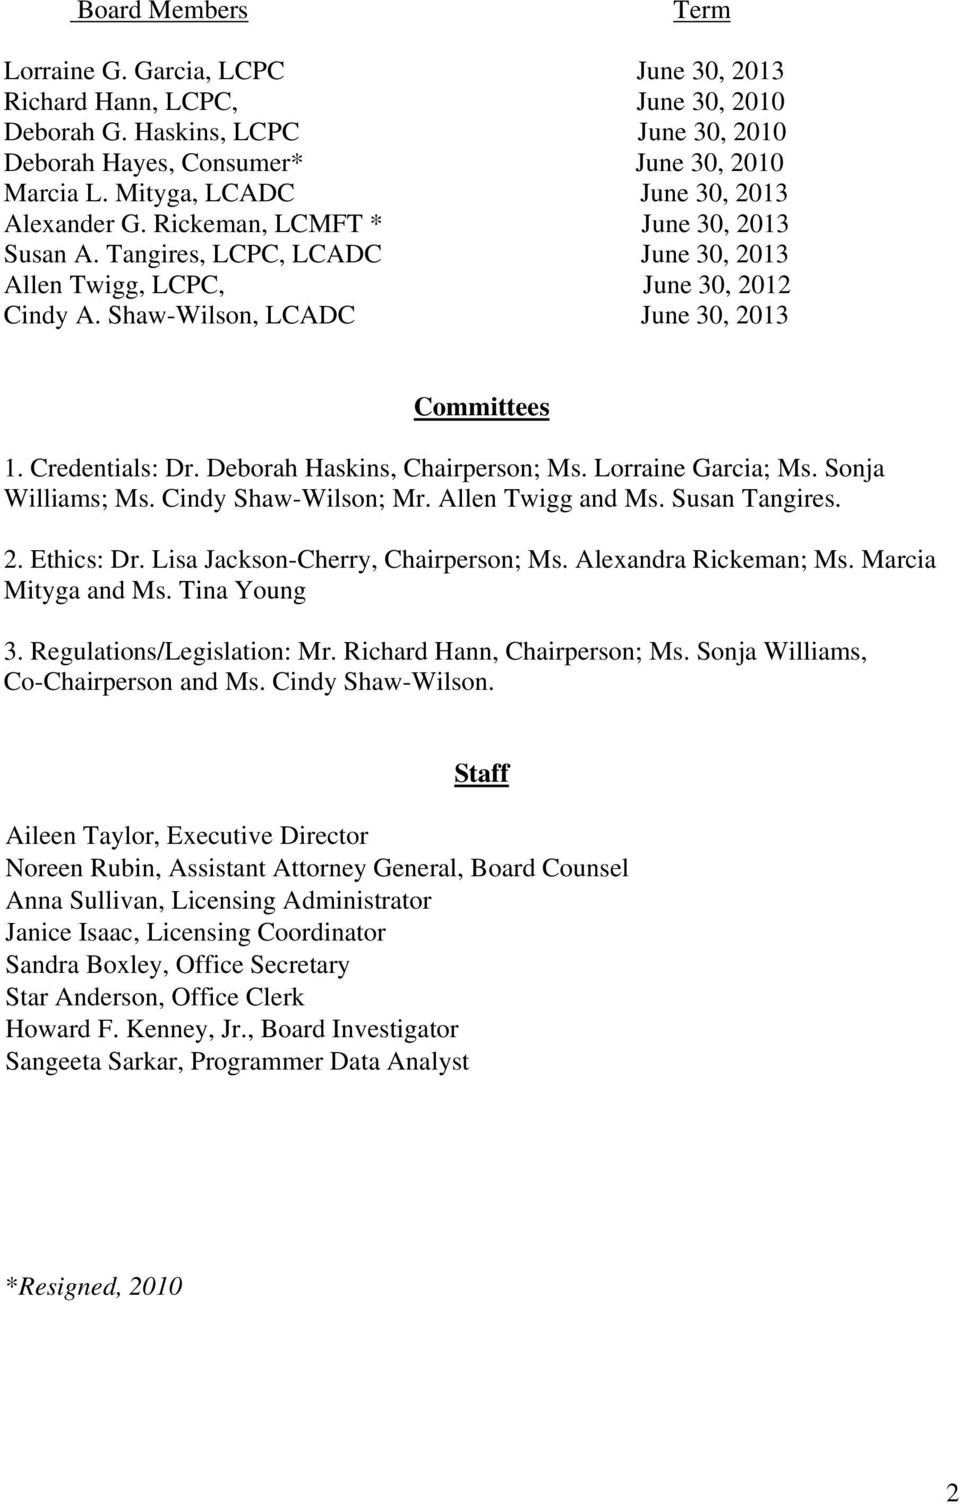 Shaw-Wilson, LCADC June 30, 2013 Committees 1. Credentials: Dr. Deborah Haskins, Chairperson; Ms. Lorraine Garcia; Ms. Sonja Williams; Ms. Cindy Shaw-Wilson; Mr. Allen Twigg and Ms. Susan Tangires. 2. Ethics: Dr.